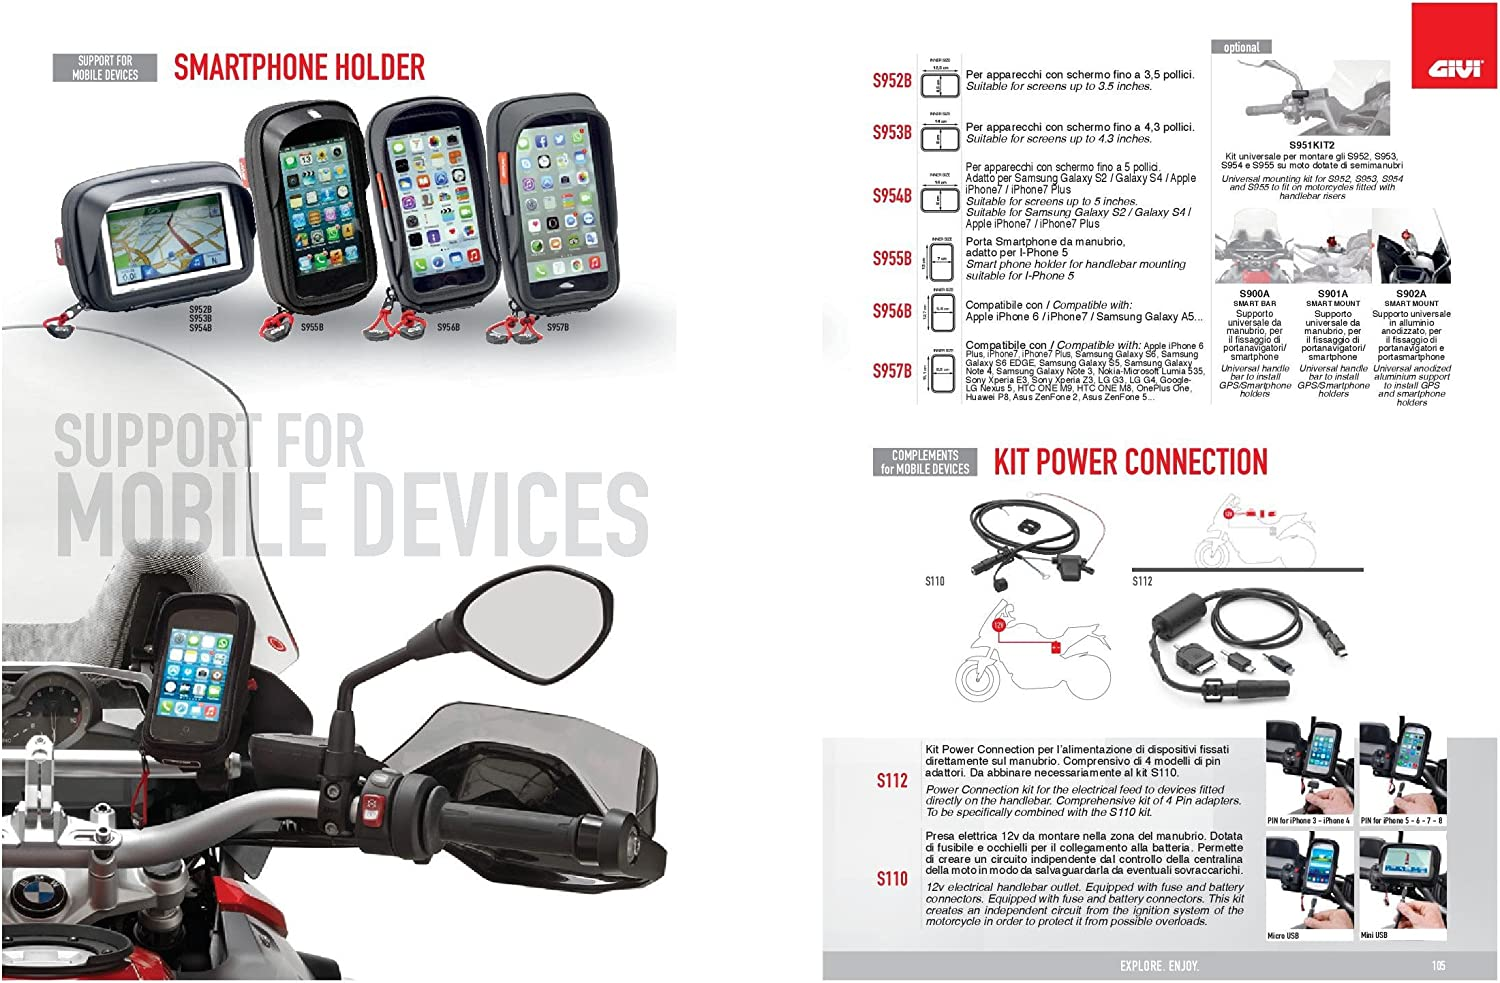 iBracket: la custodia per moto e bici - iPhone Italia